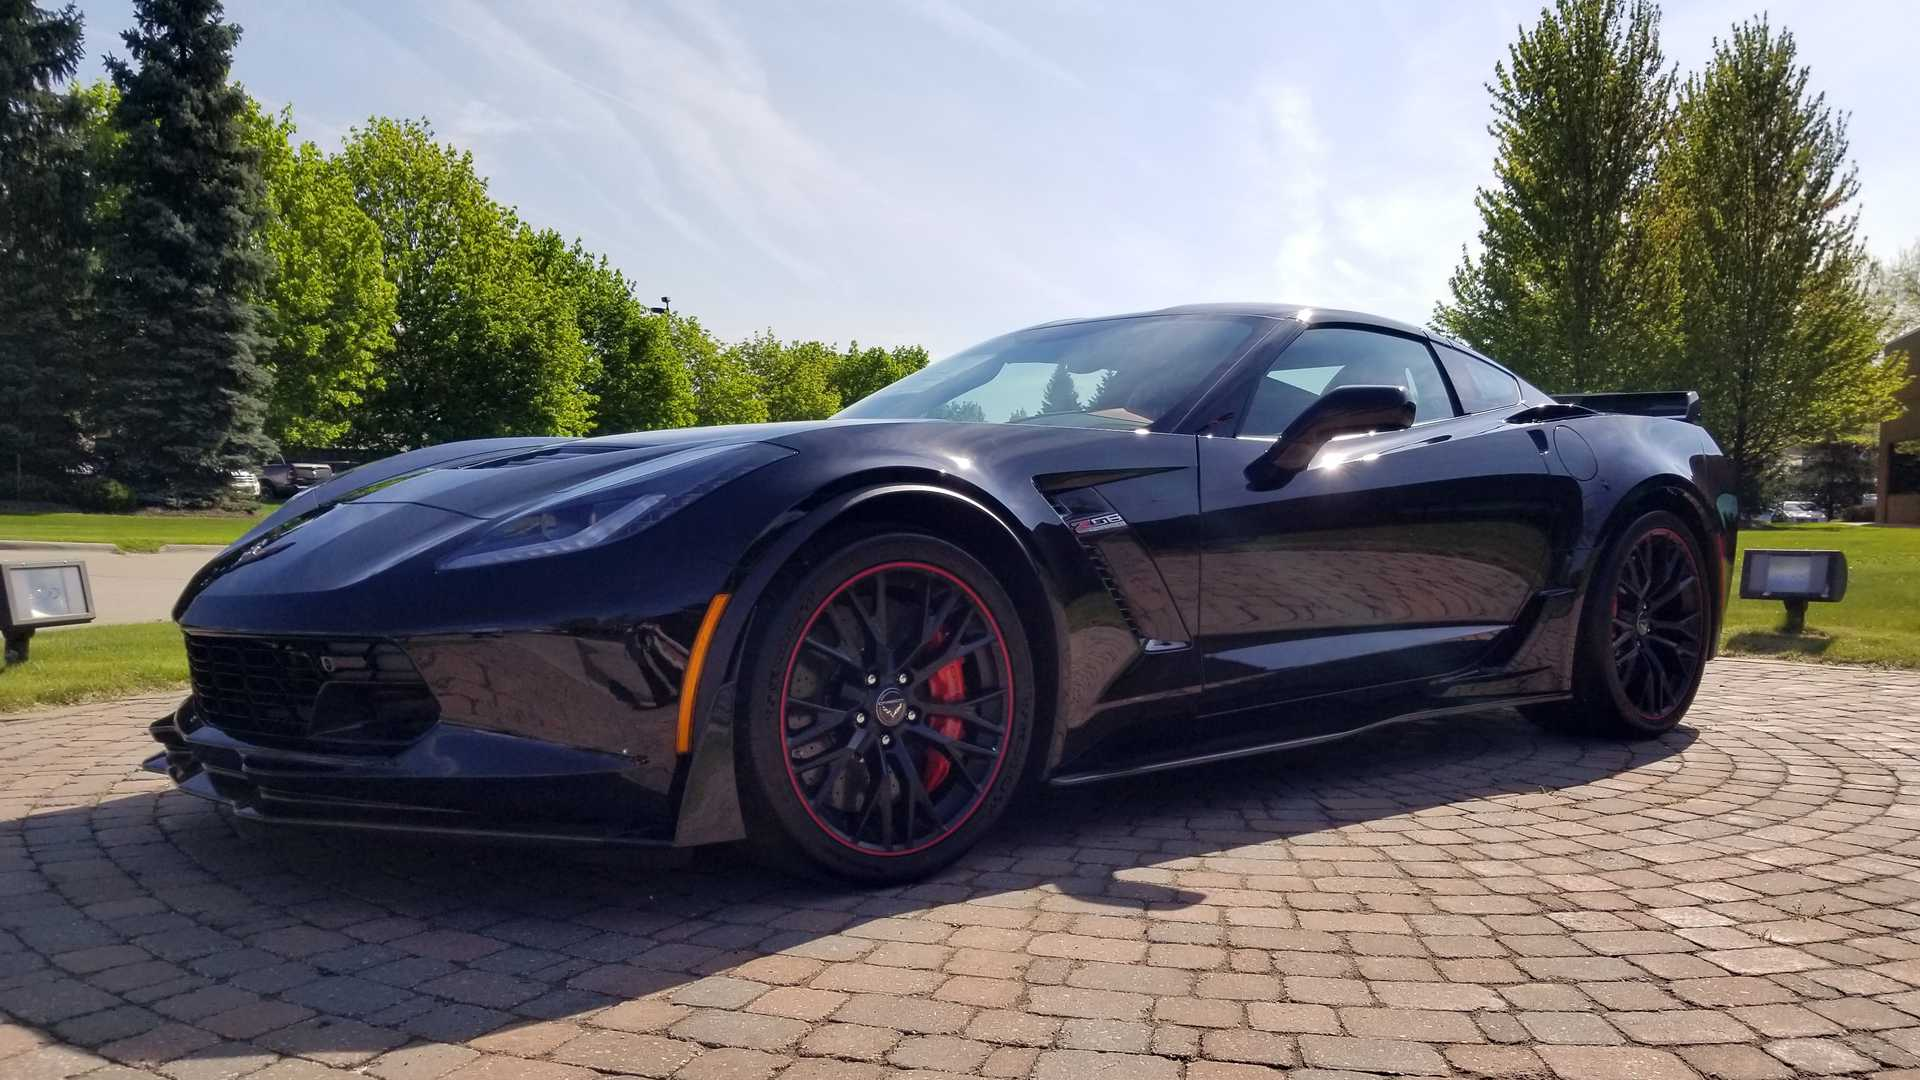 2019 Chevrolet Corvette Z06 C7 Last Built Namaste Car